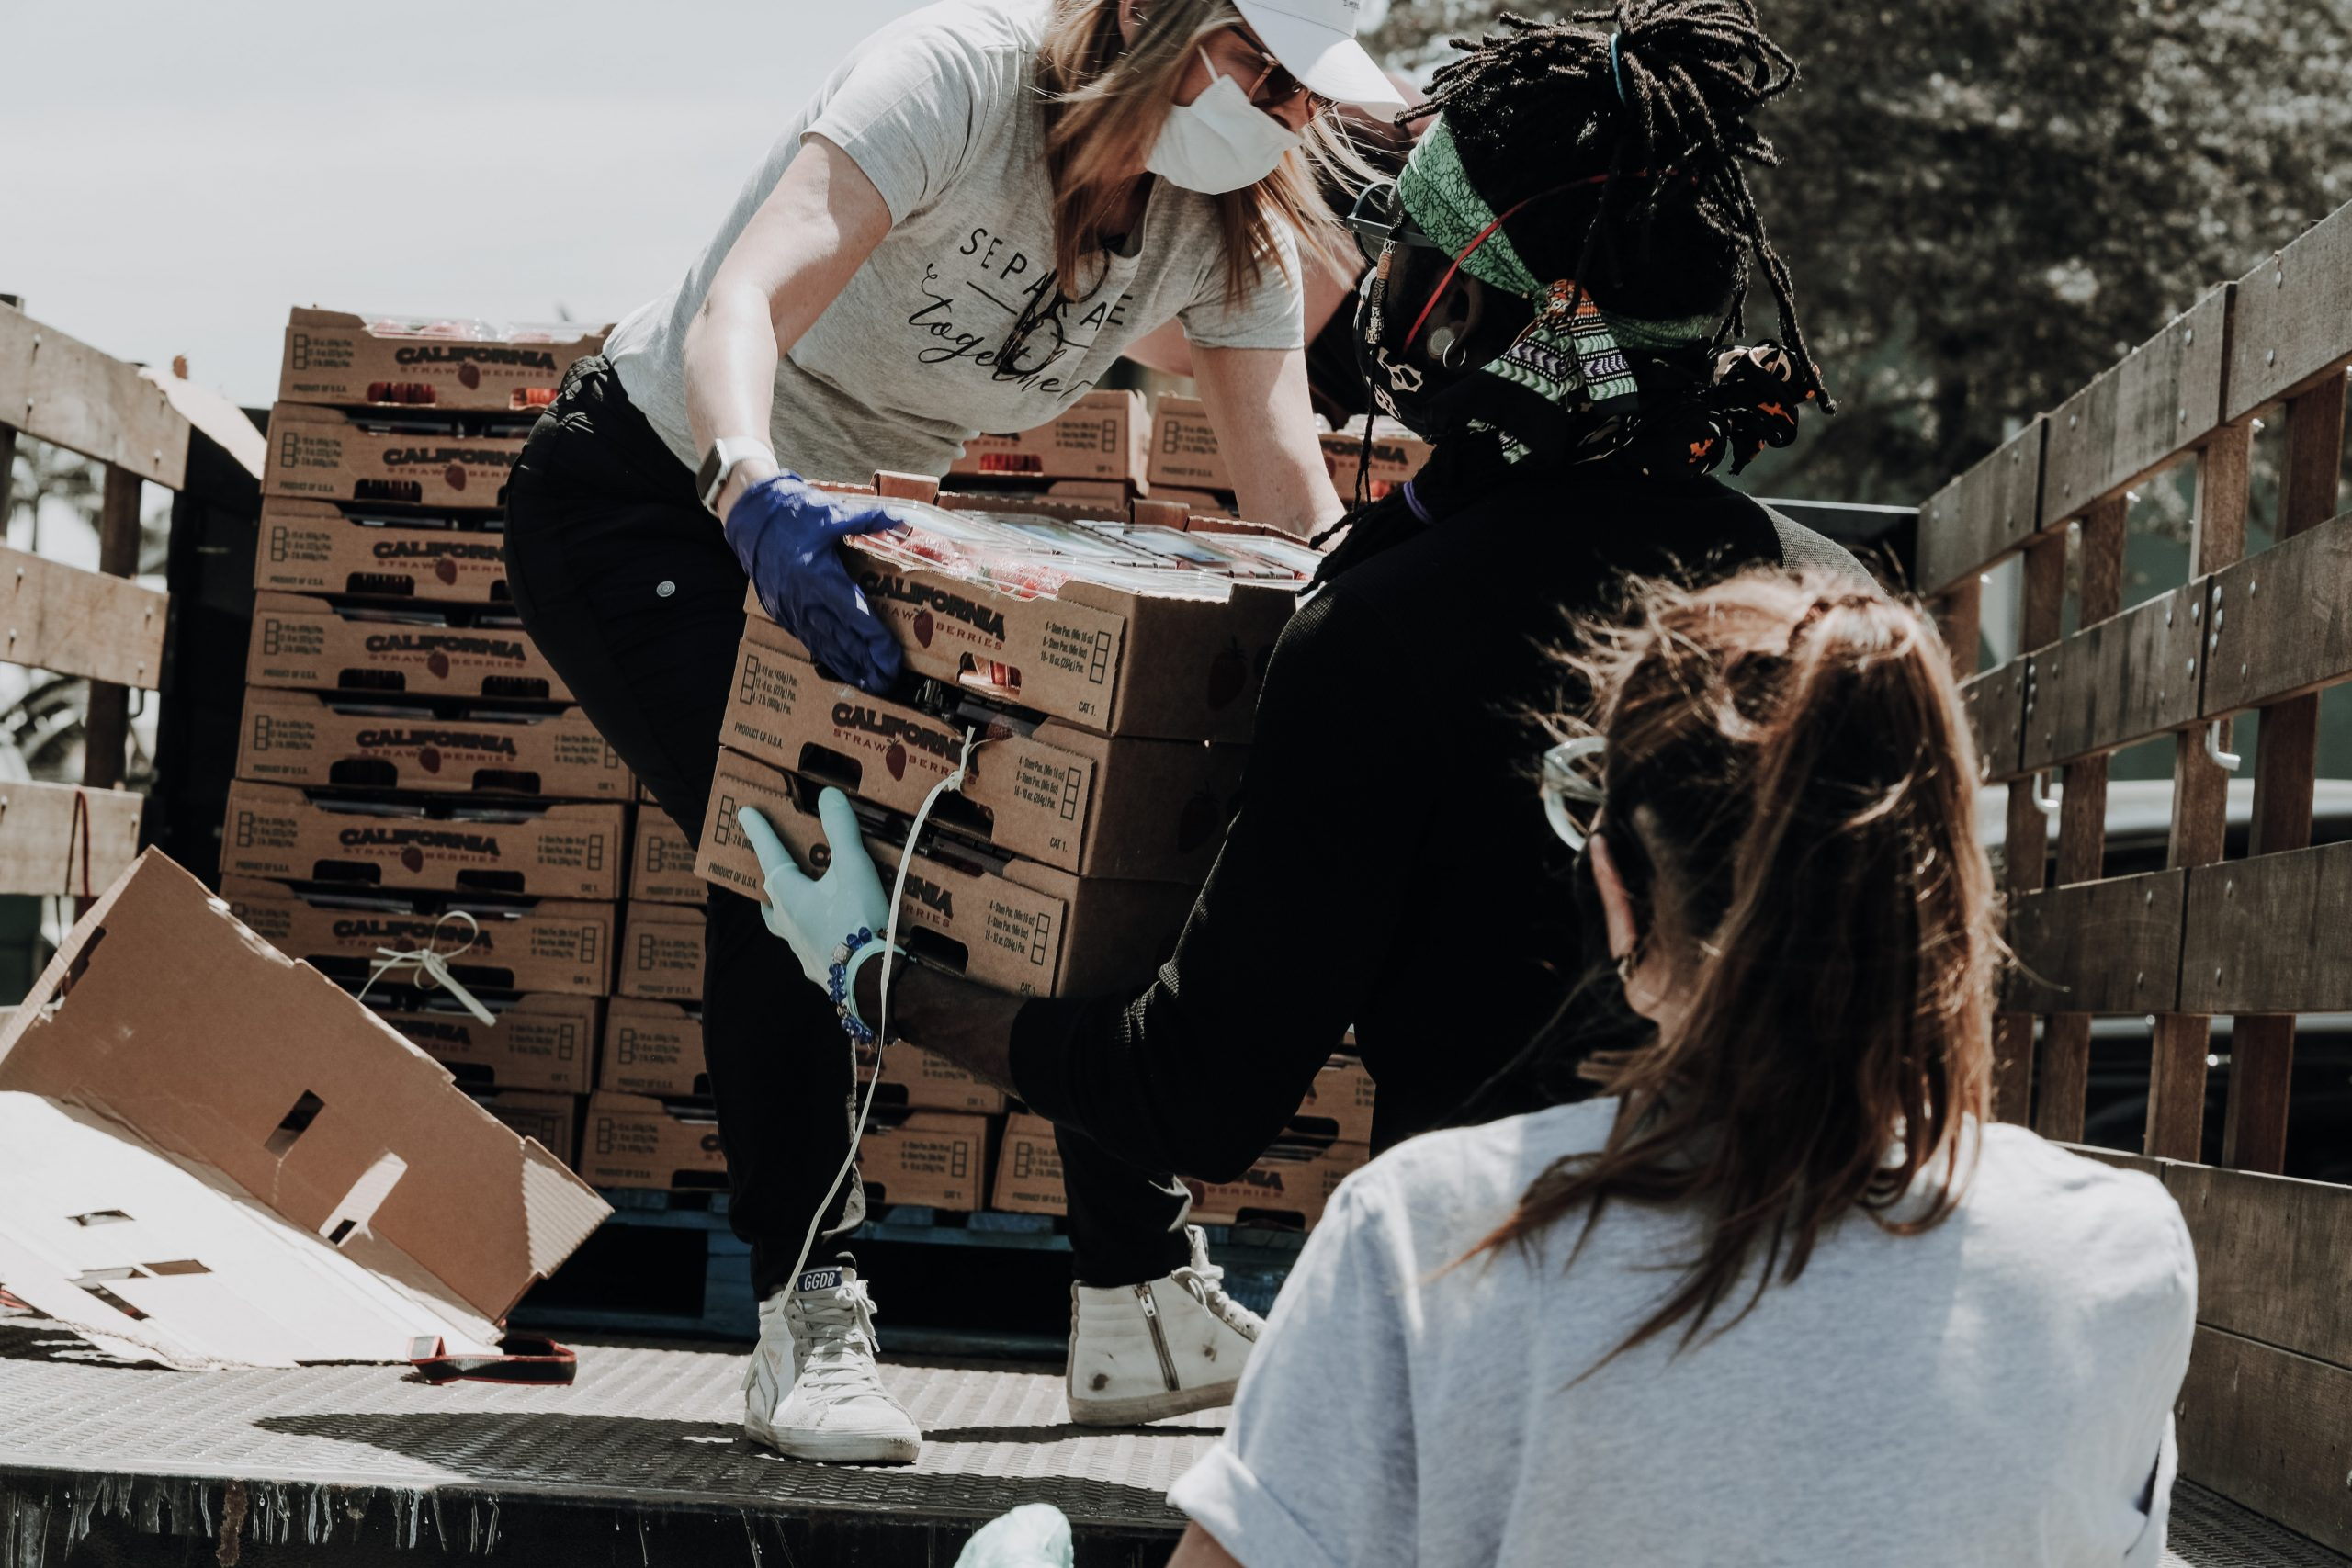 Three volunteers wearing face masks unload crates of strawberries off of a truck